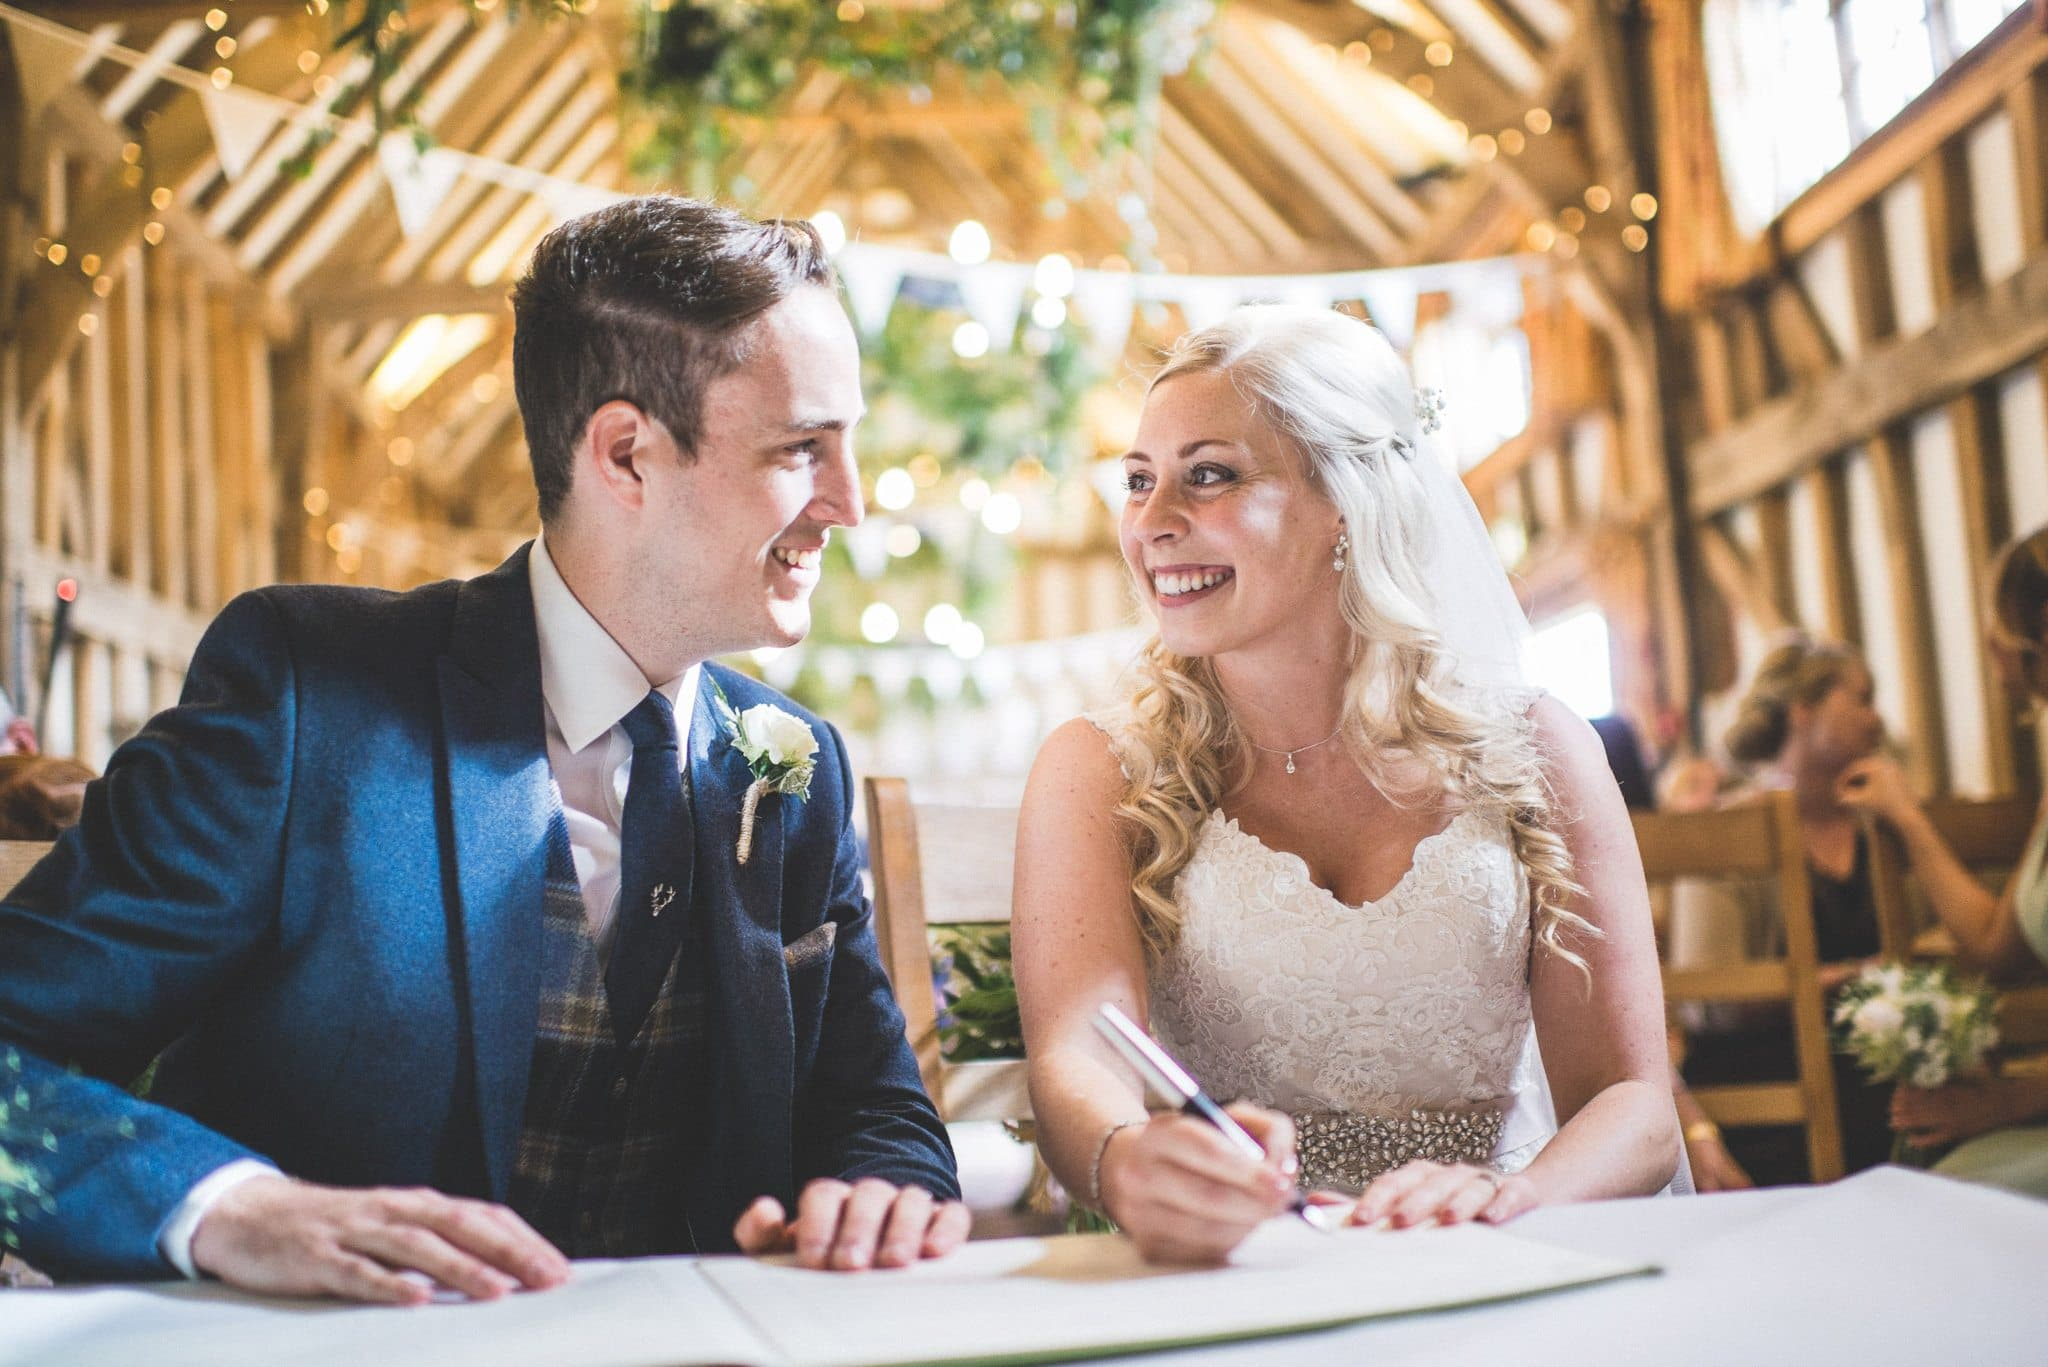 The newlyweds smile happily as they sign the register